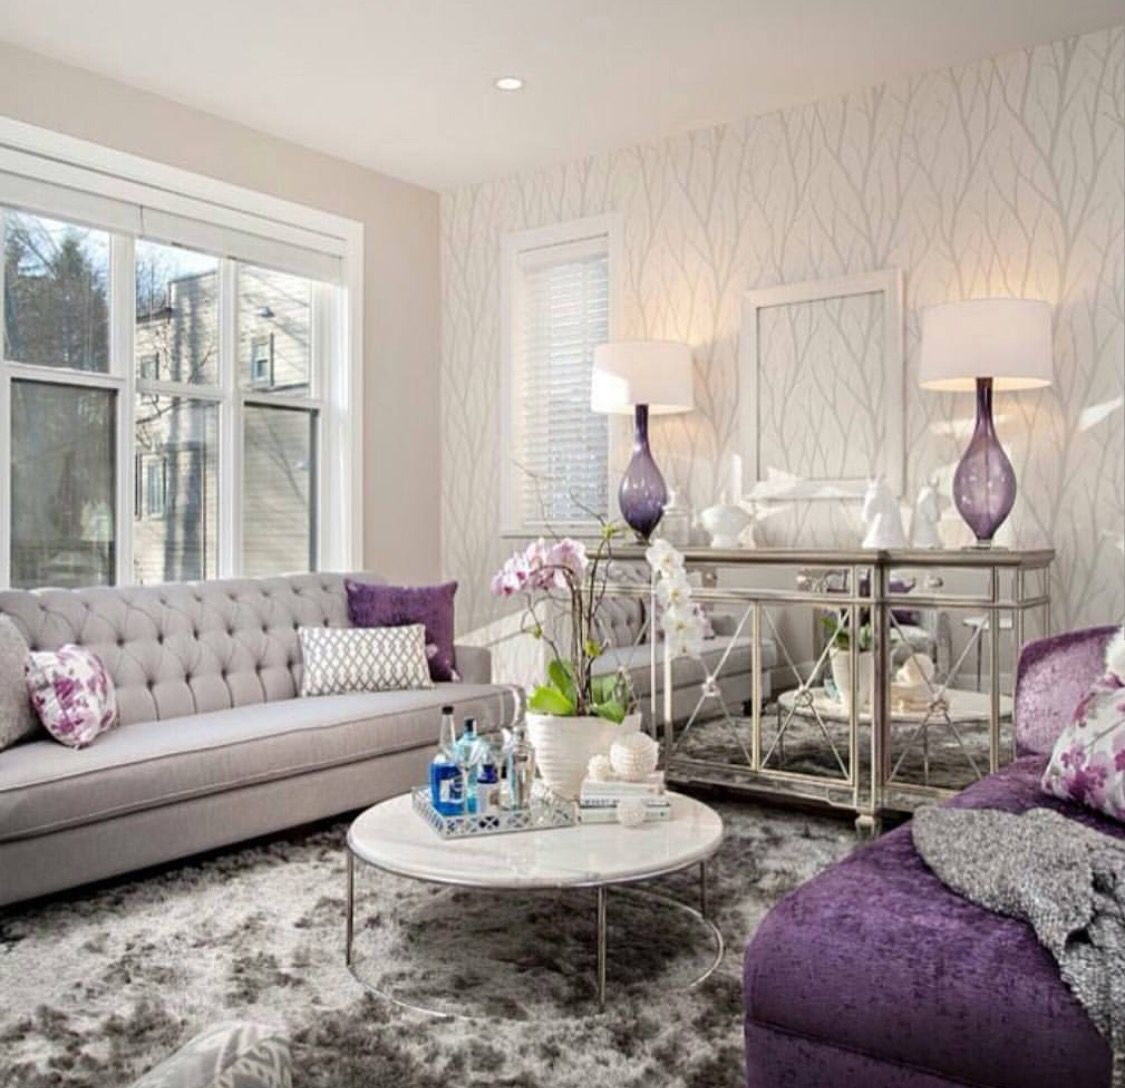 Pin On Home Decor #purple #and #gray #living #room #ideas